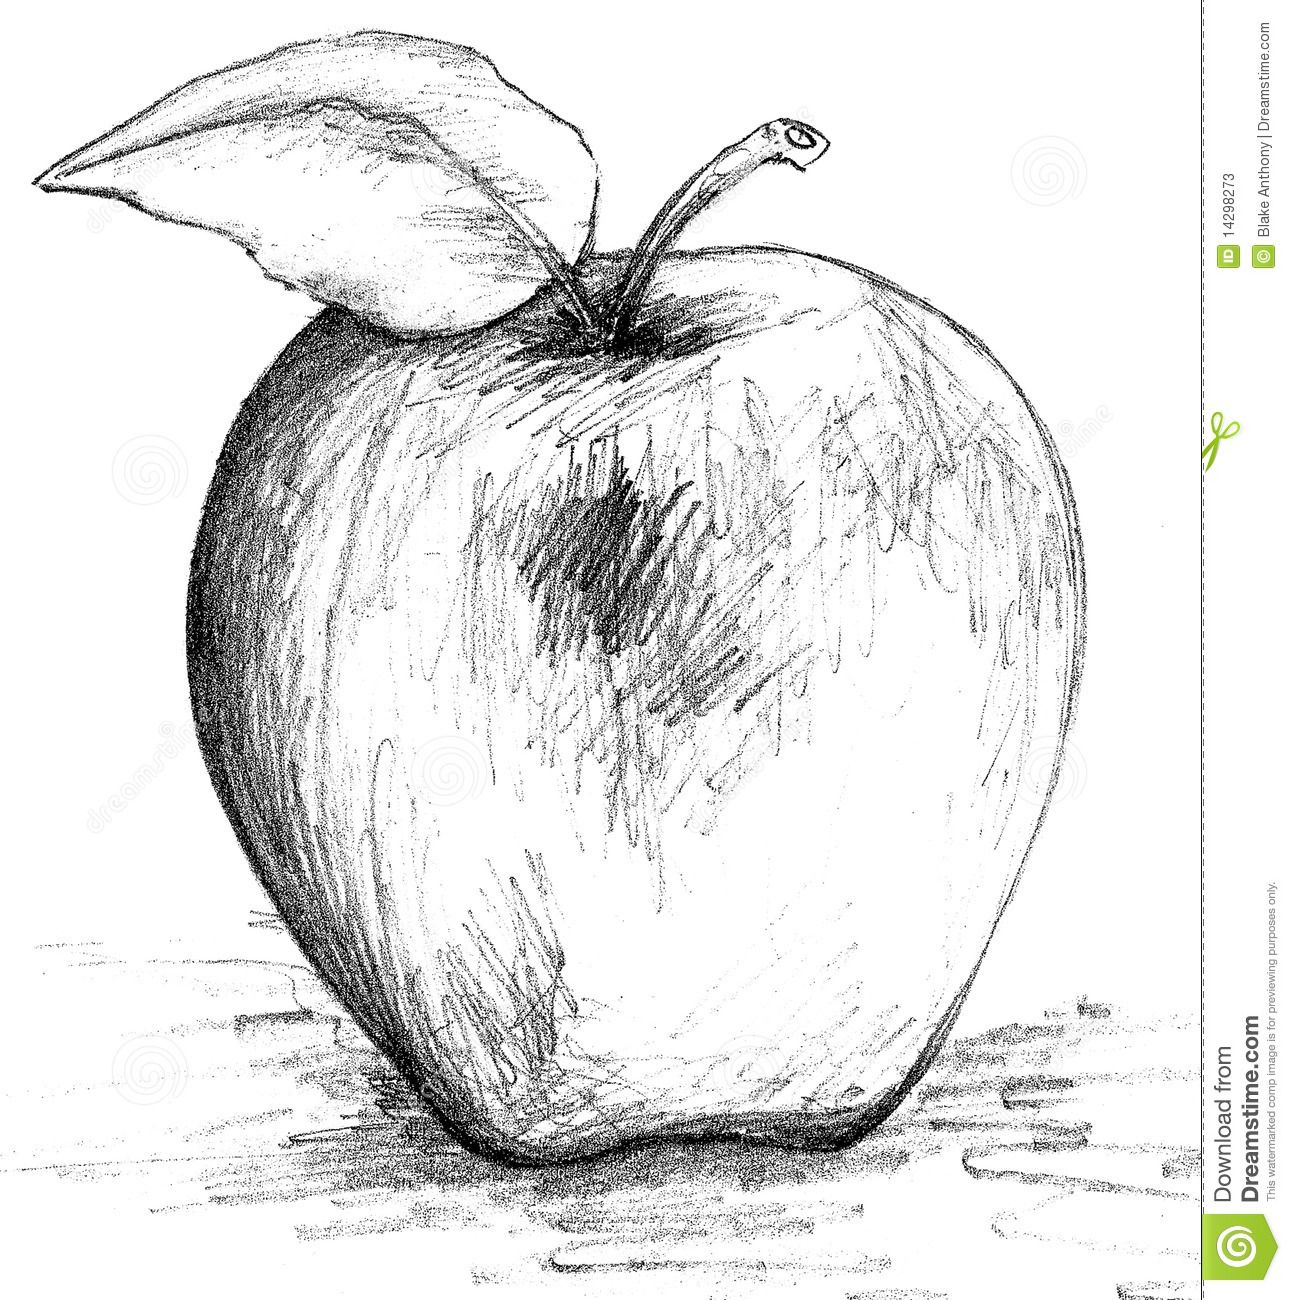 Illustration about pencil drawing sketch of an apple illustration